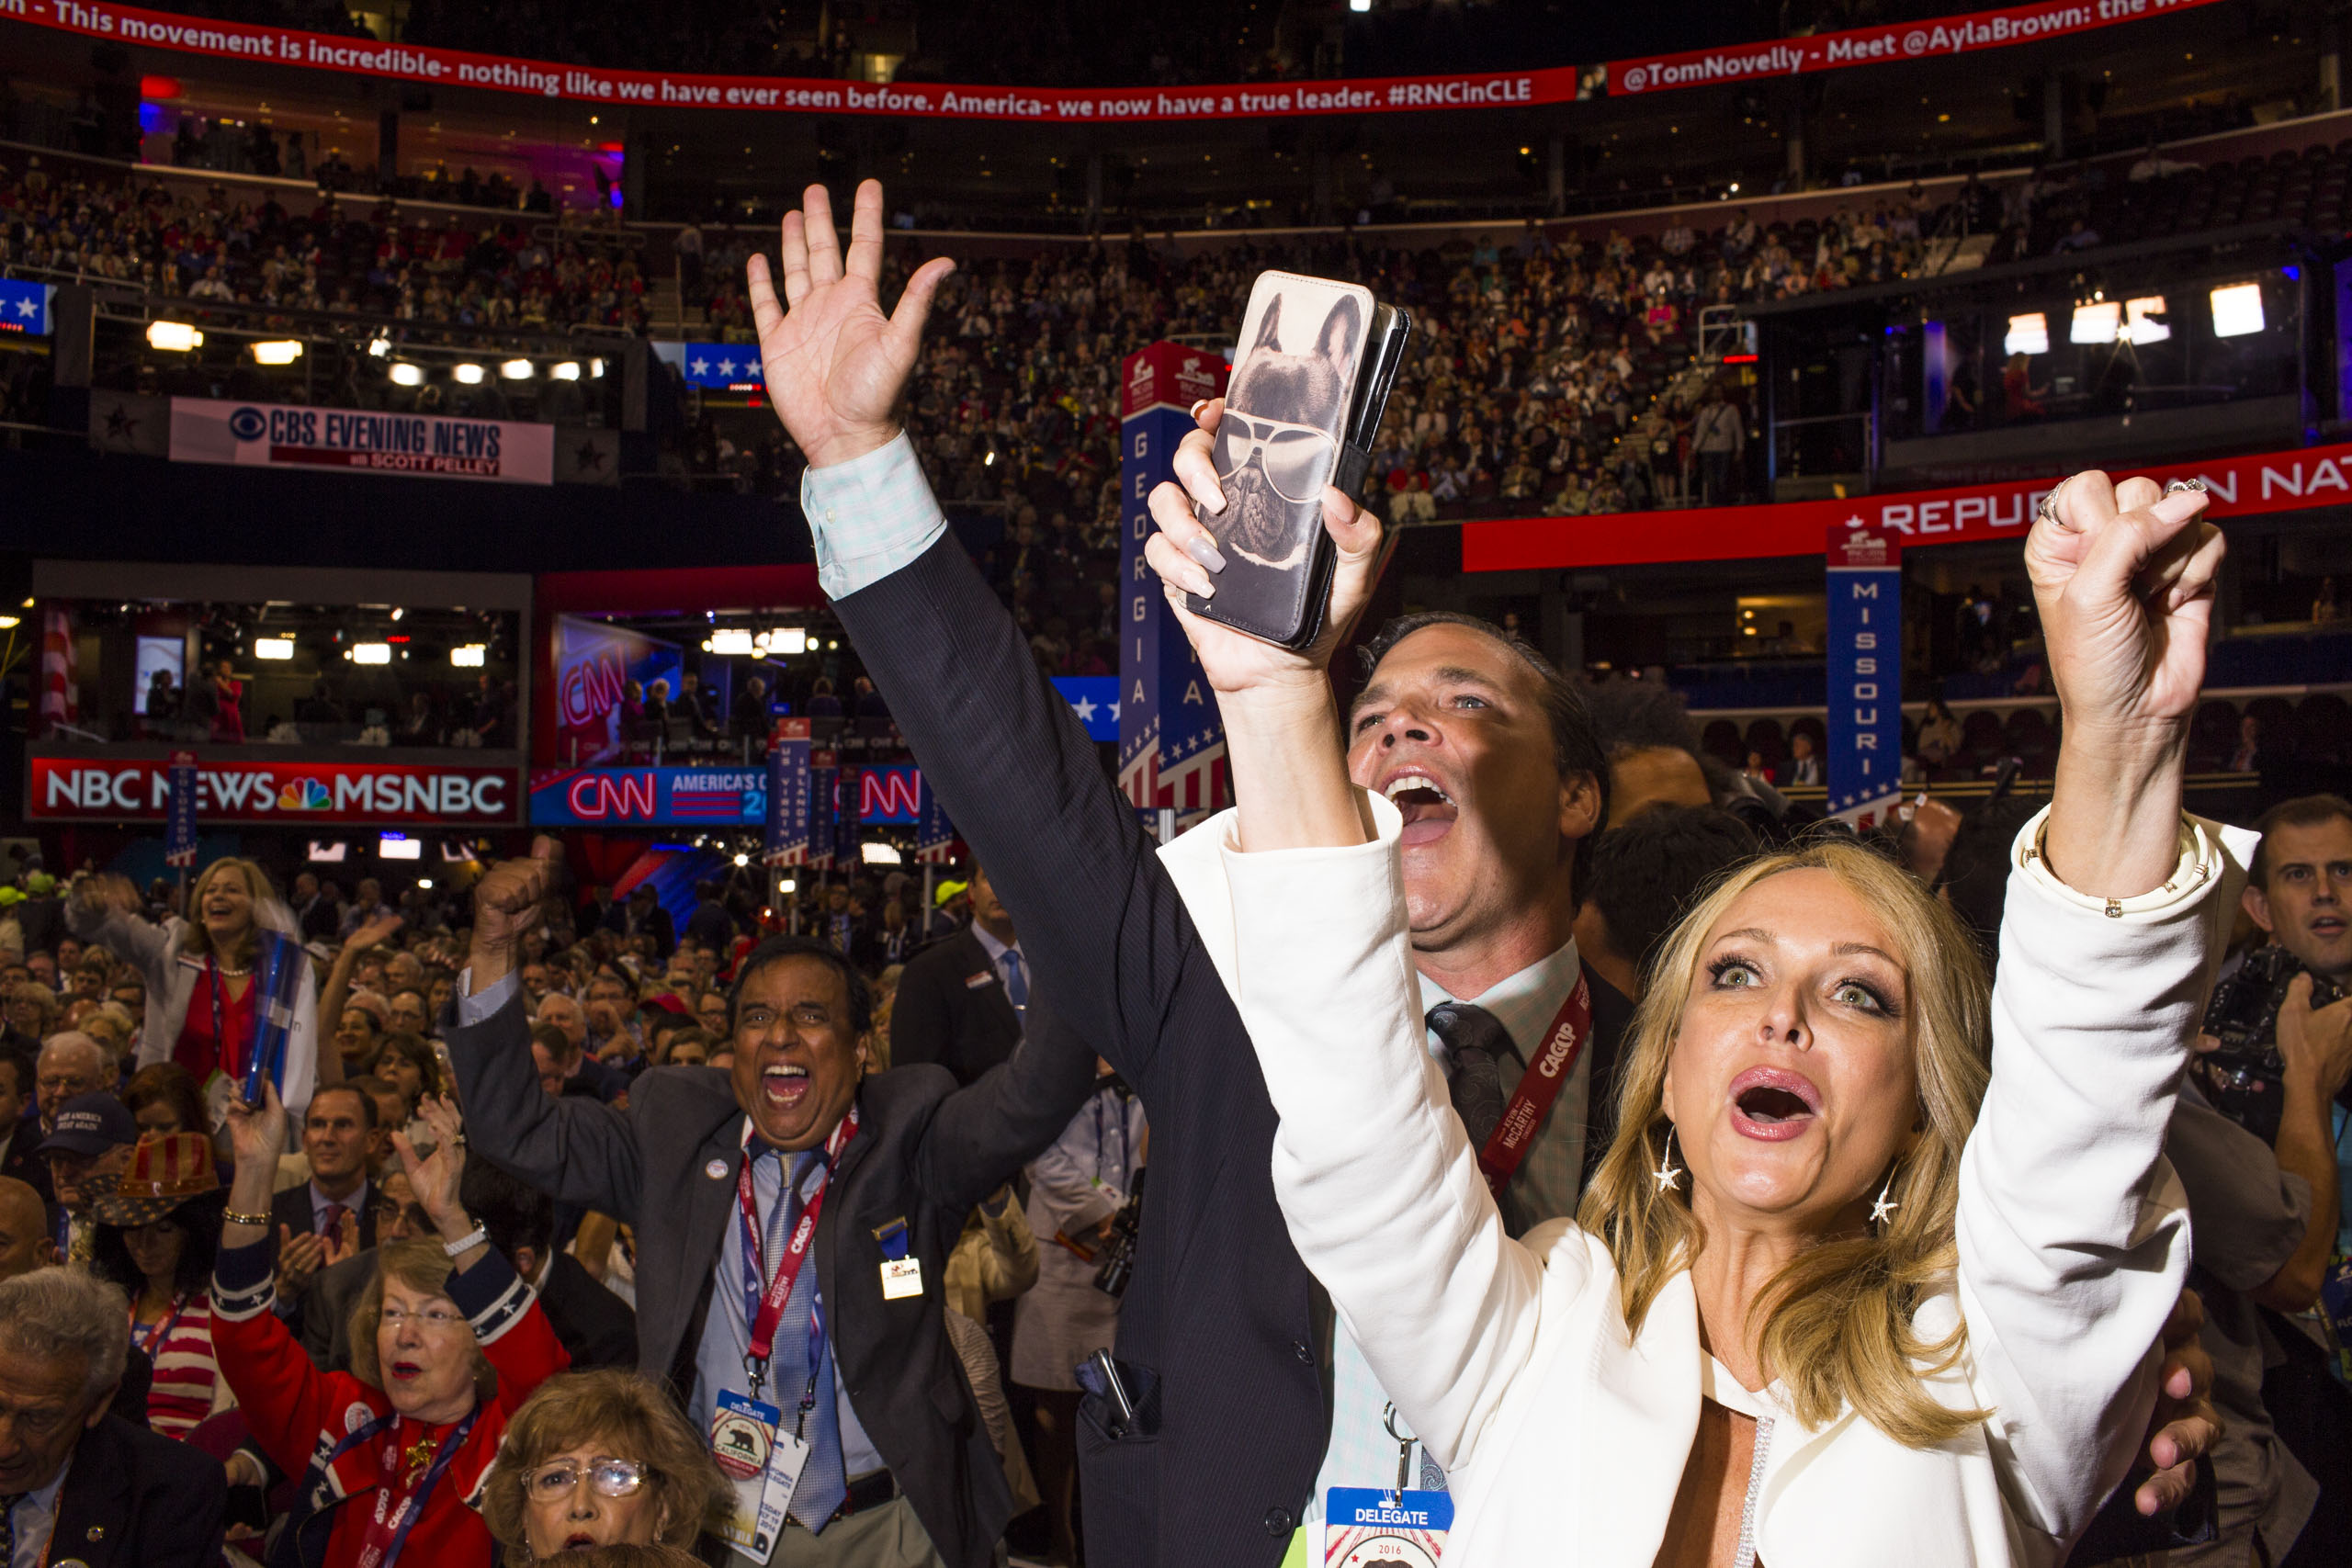 Delegates cheer at the Republican National Convention in Cleveland on Tuesday, July 19, 2016.